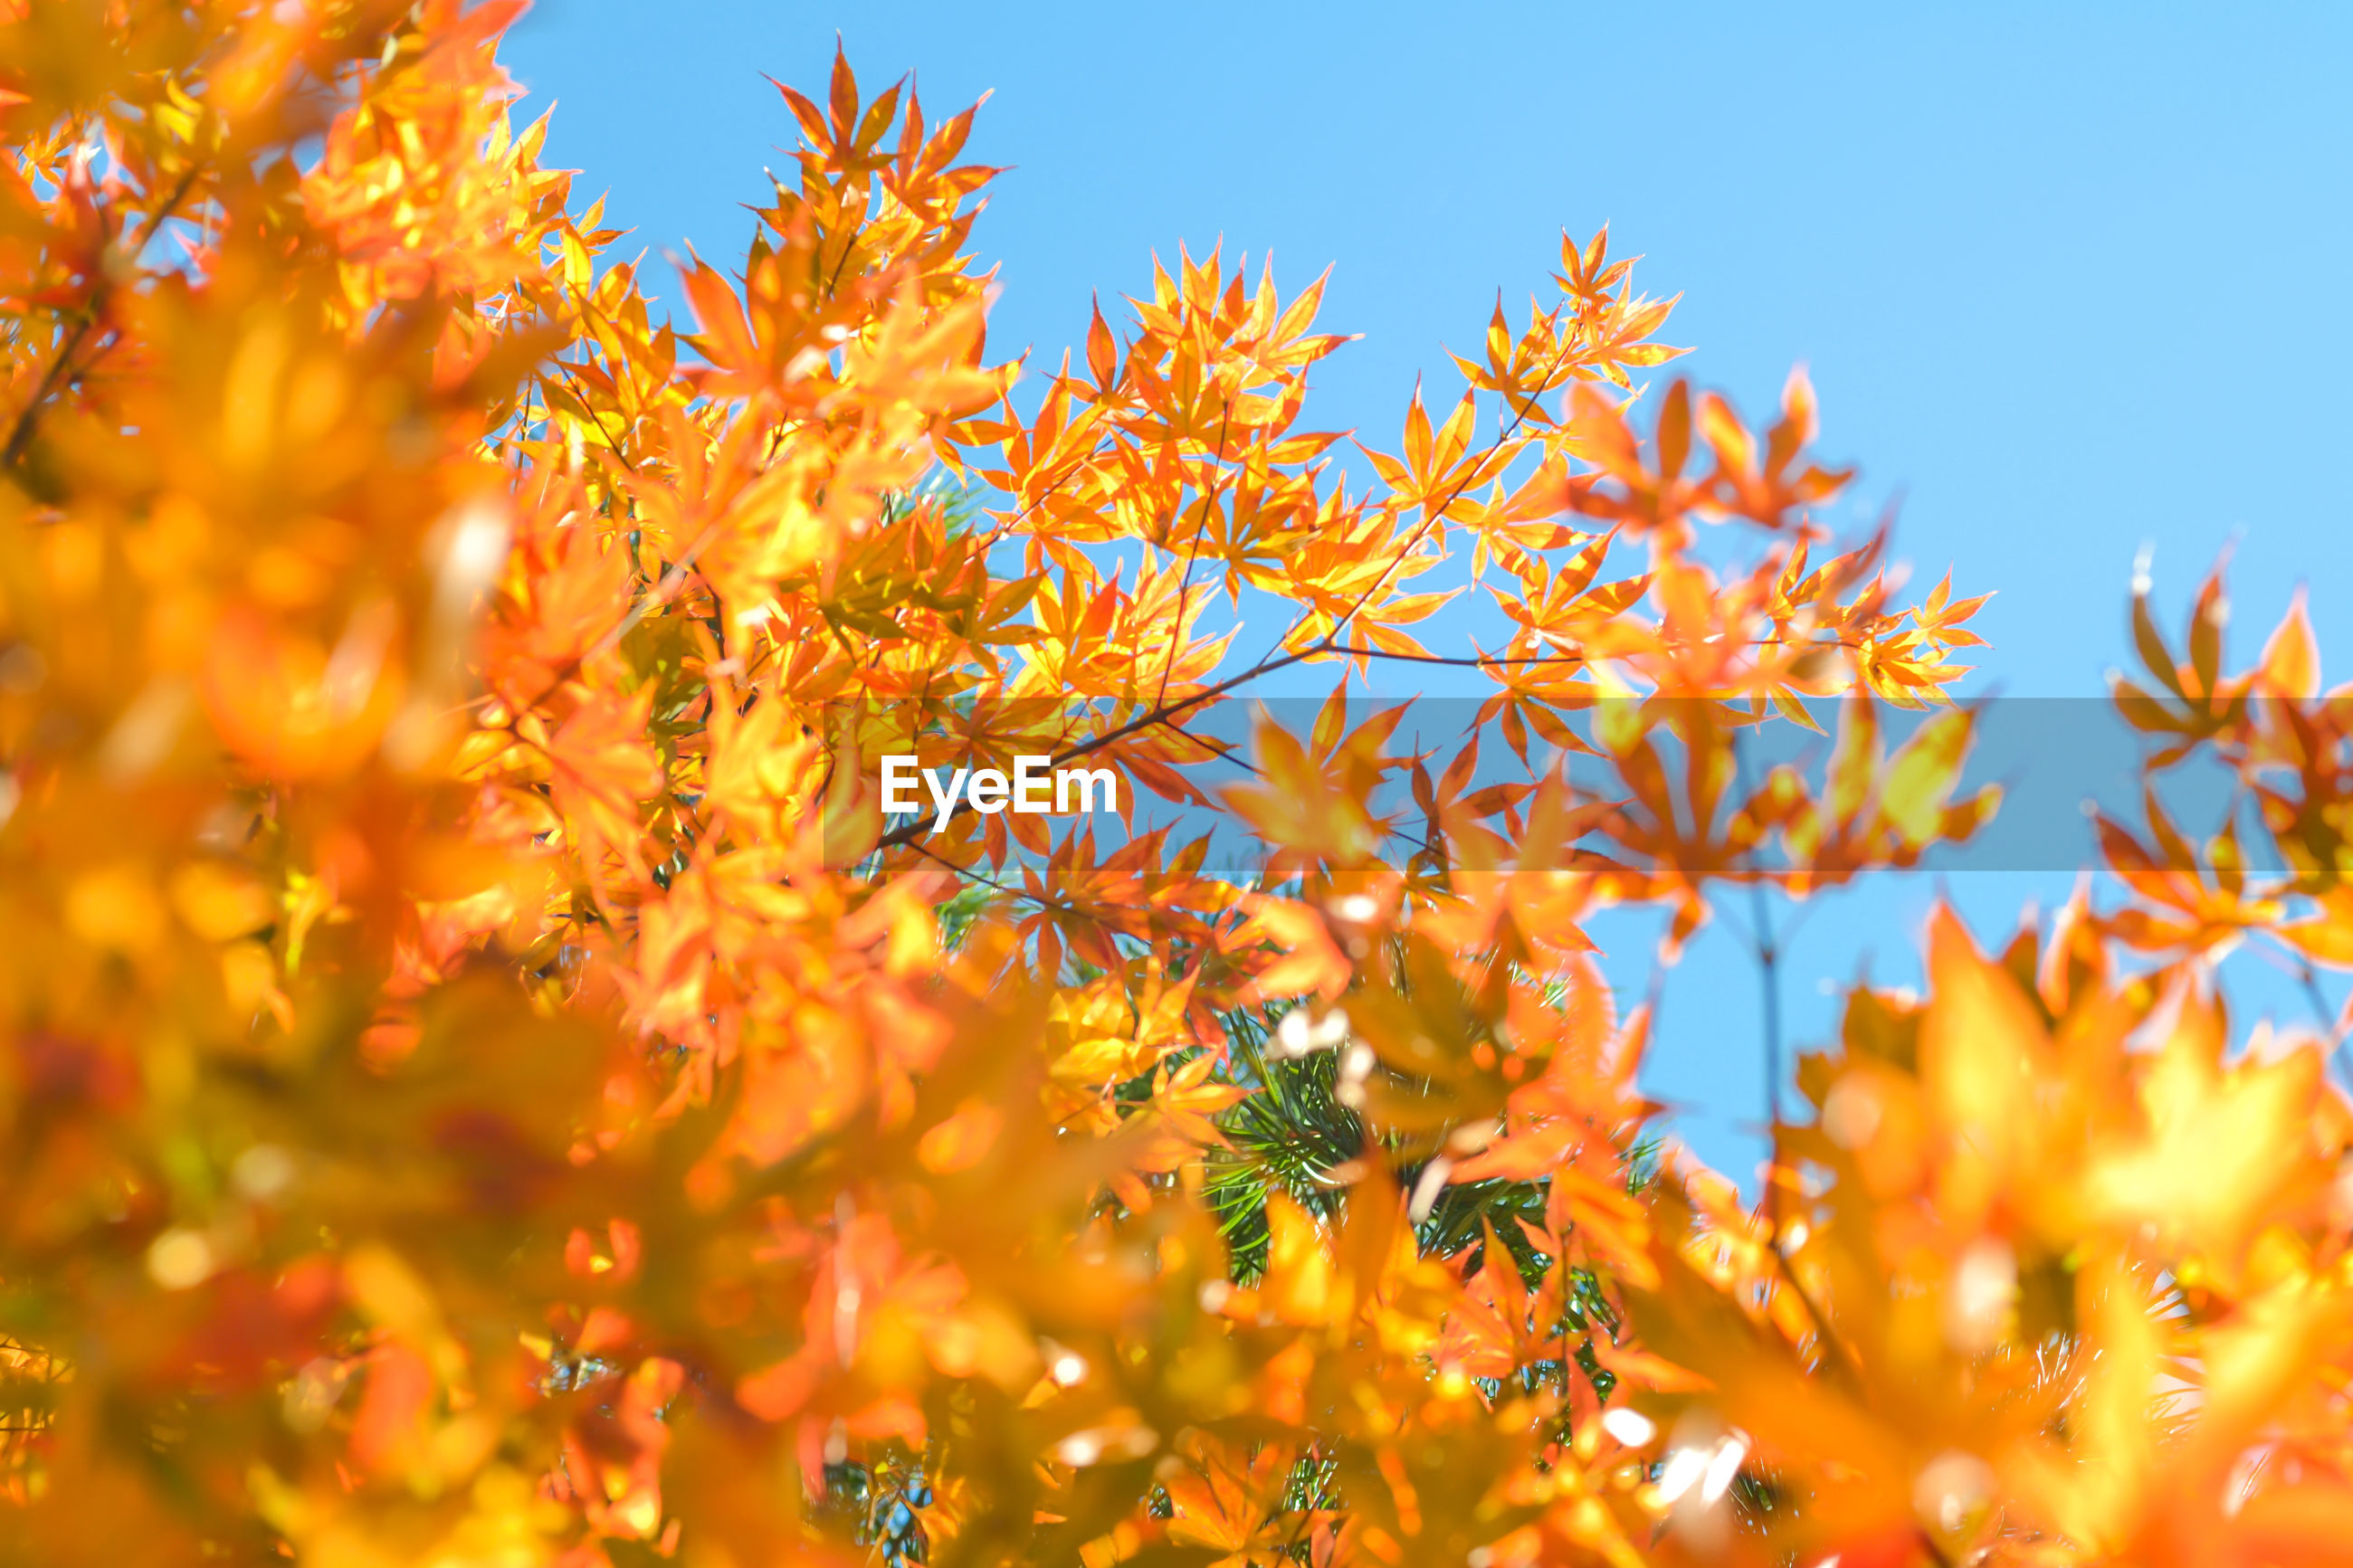 LOW ANGLE VIEW OF FLOWERING PLANTS AGAINST SKY DURING AUTUMN